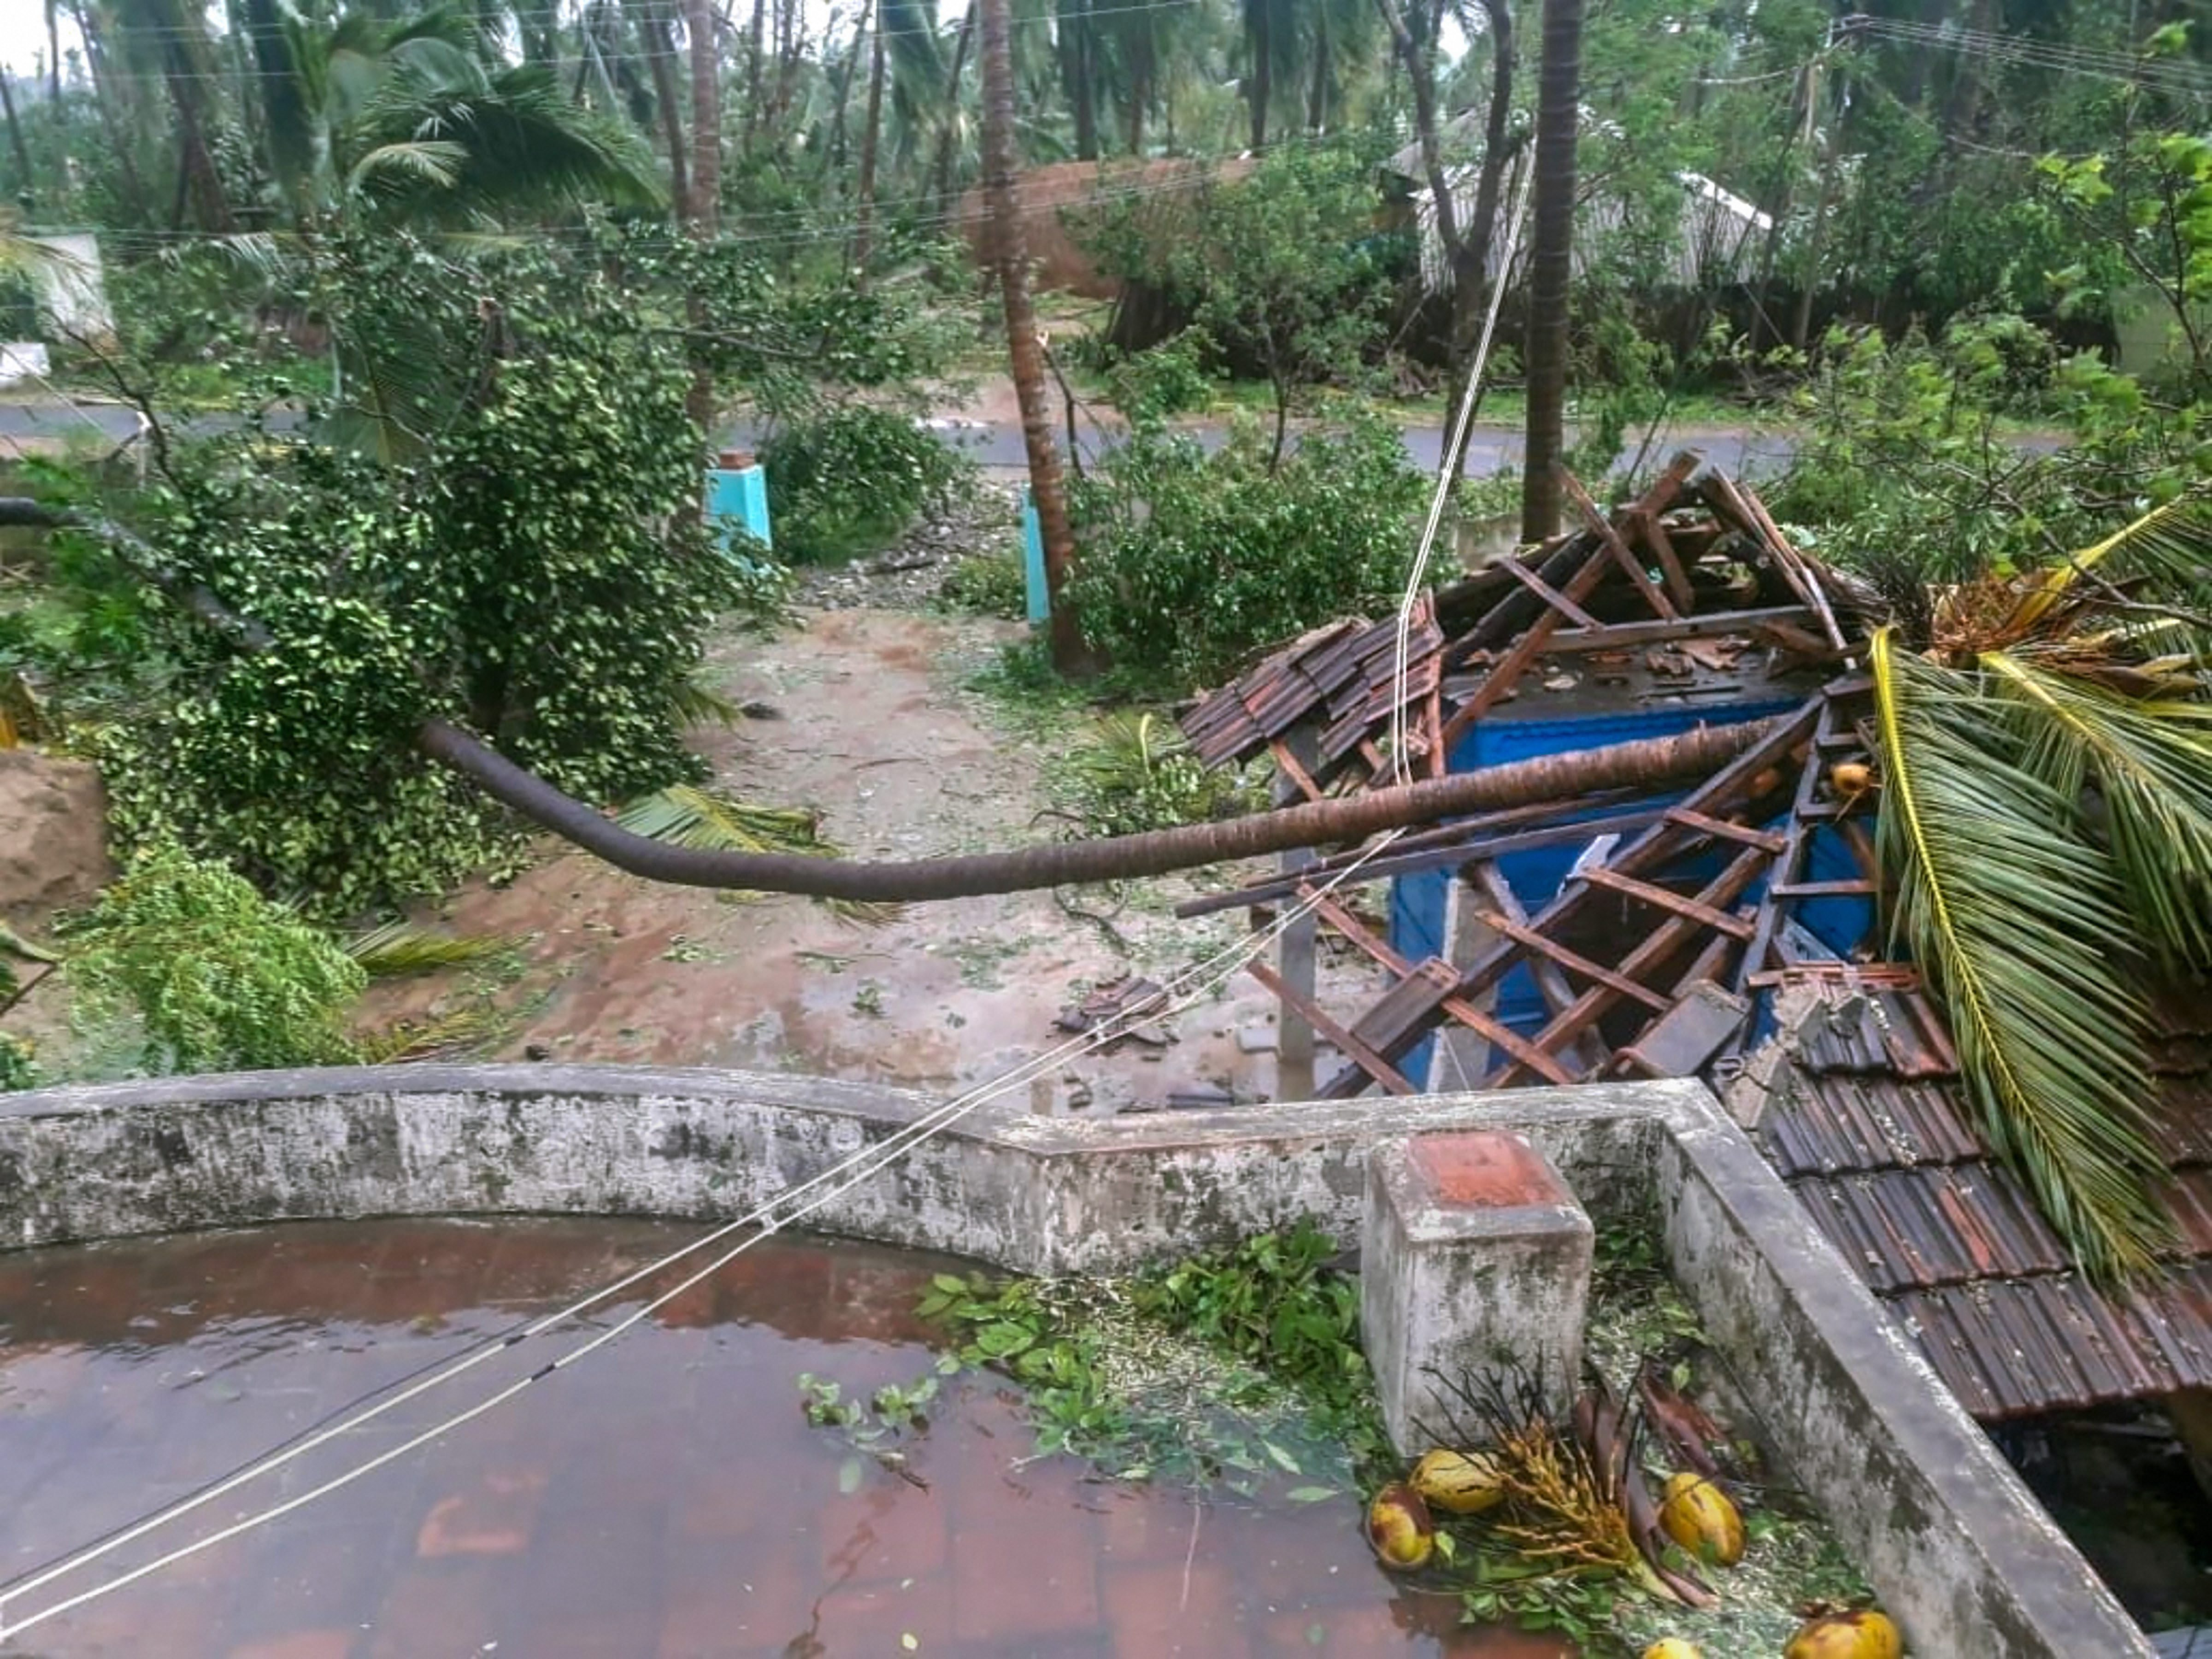 A damaged house after cyclone Gaja hit Pudukkottai district in Tamil Nadu on November 16. Over 80,000 people were evacuated from low-lying areas as the severe cyclonic storm crossed the state's coast between Nagapattinam and nearby Vedaranyam.